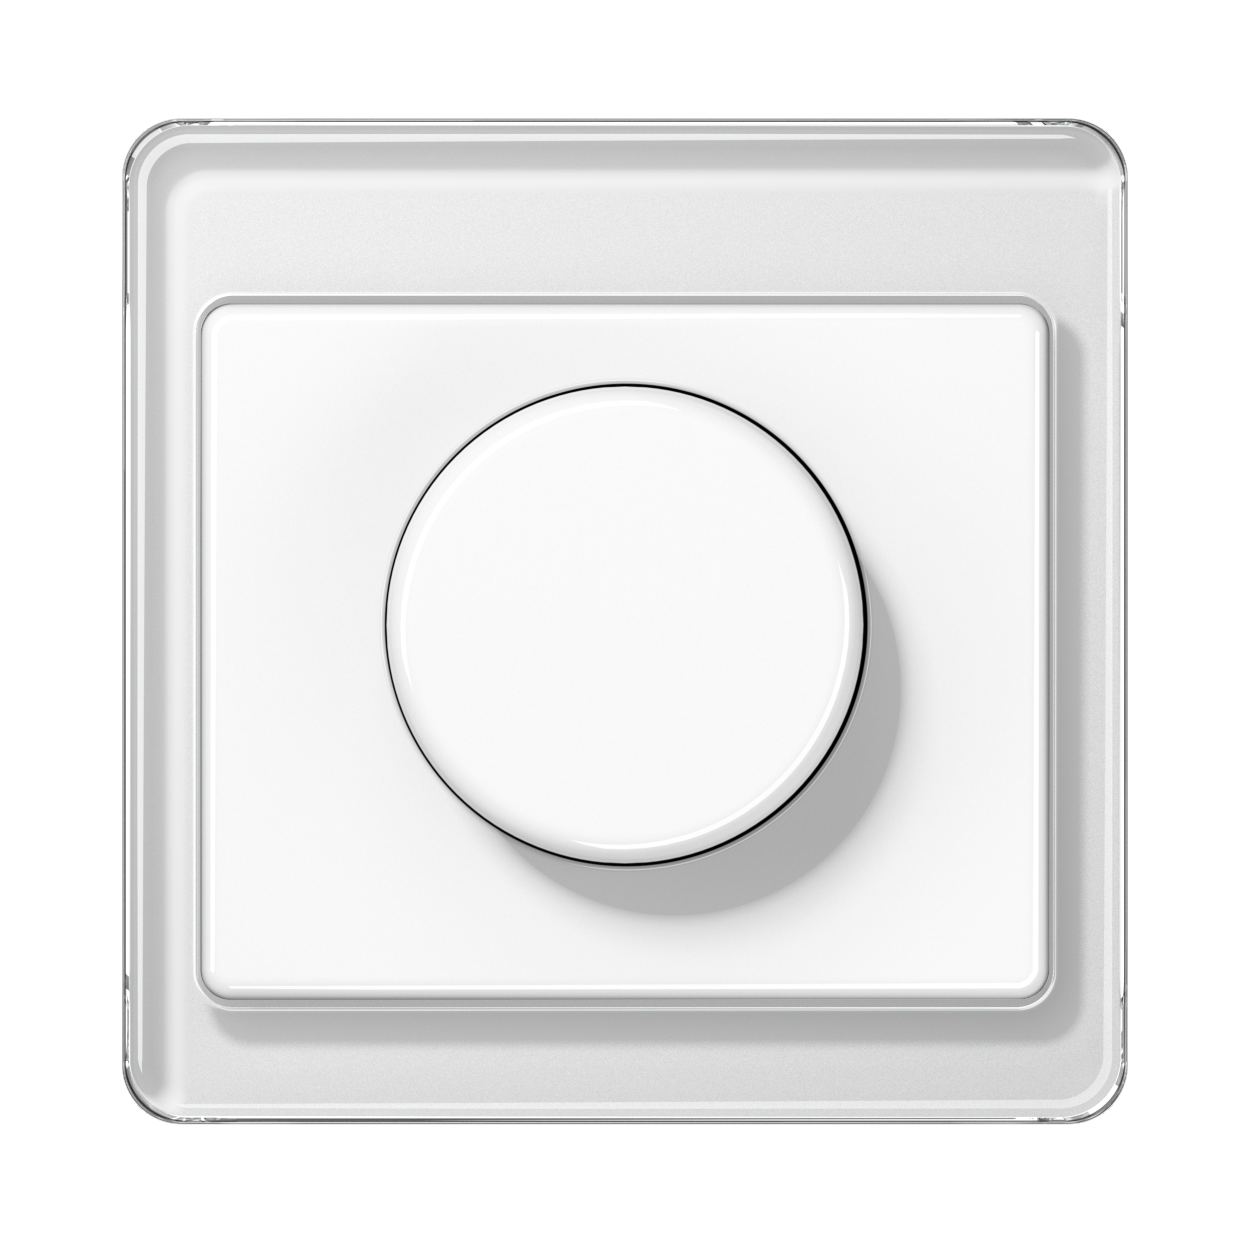 JUNG_SL500_white_dimmer